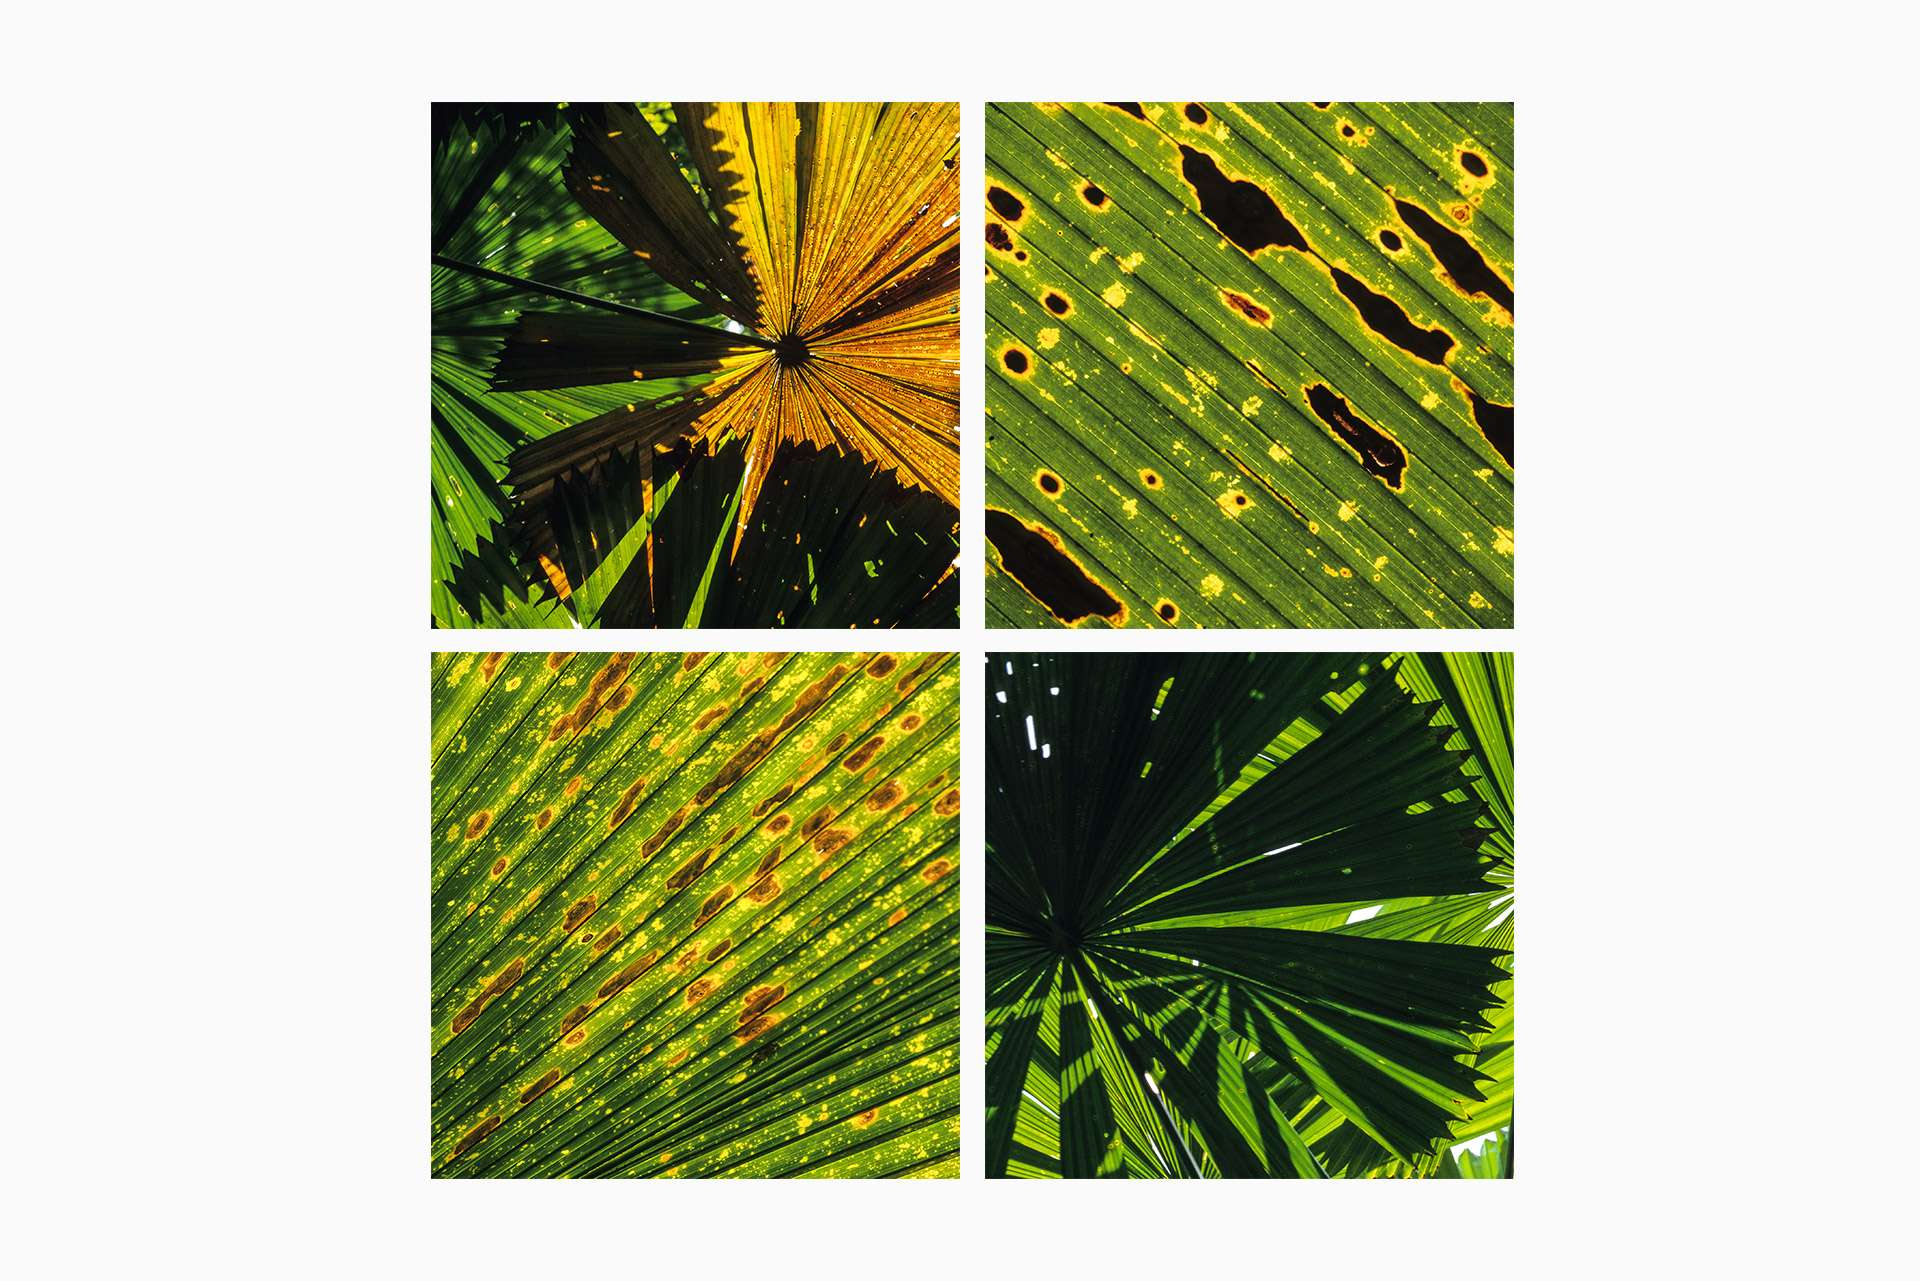 Gilles Martin's photograph of vegetation from cape Tribulation in Australia